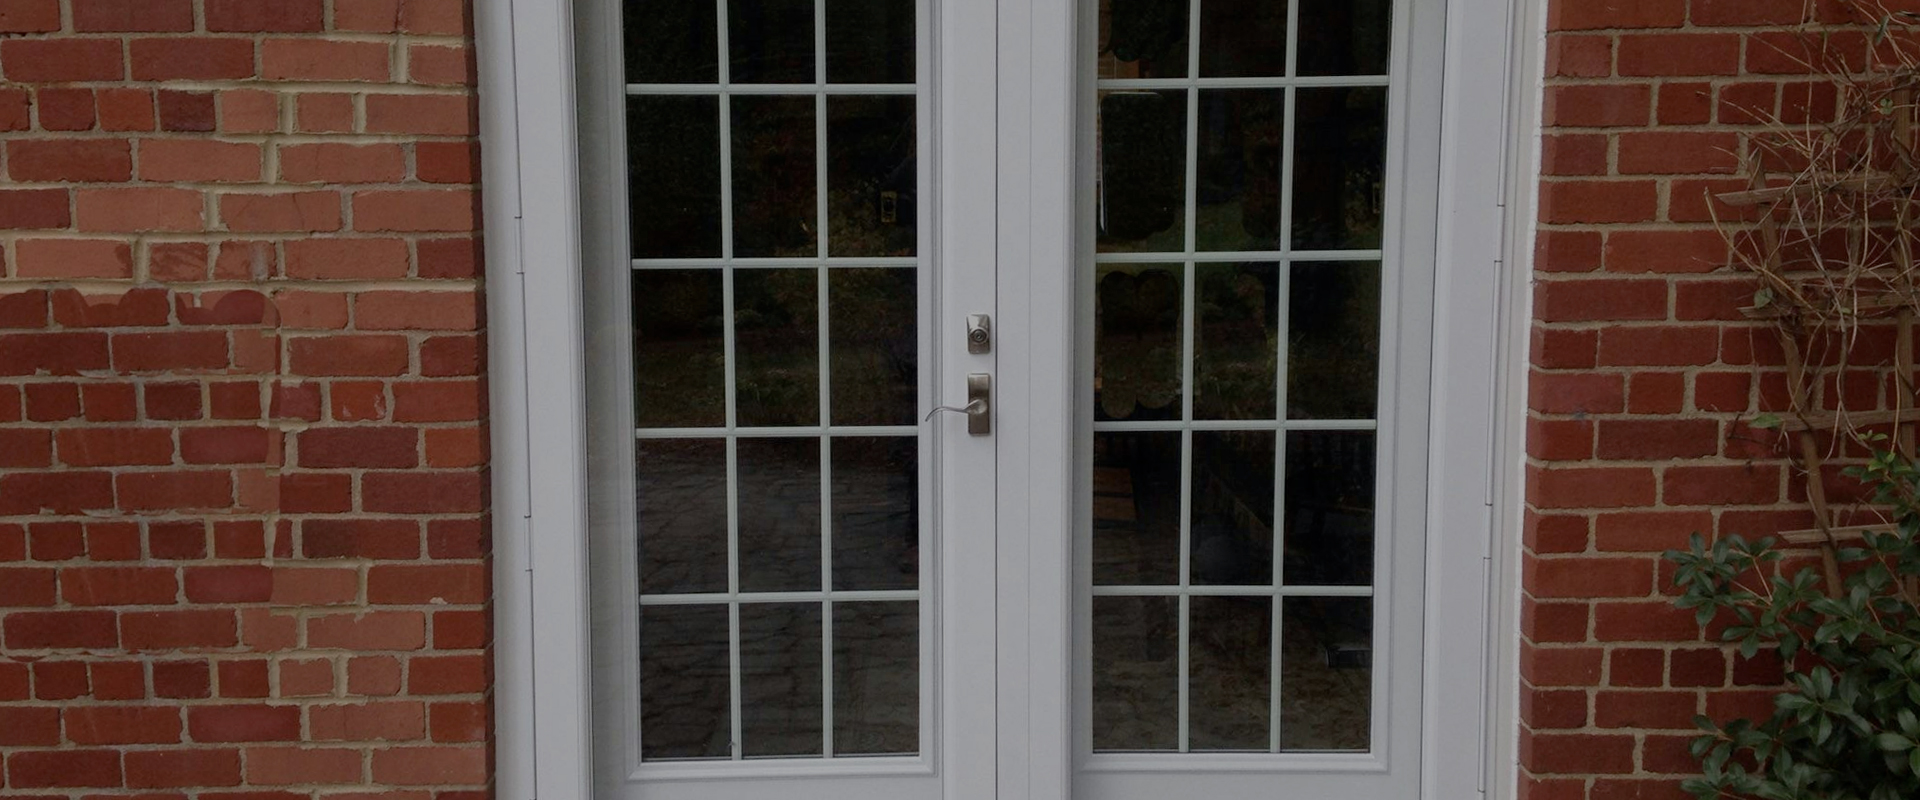 glass double doors on brick house